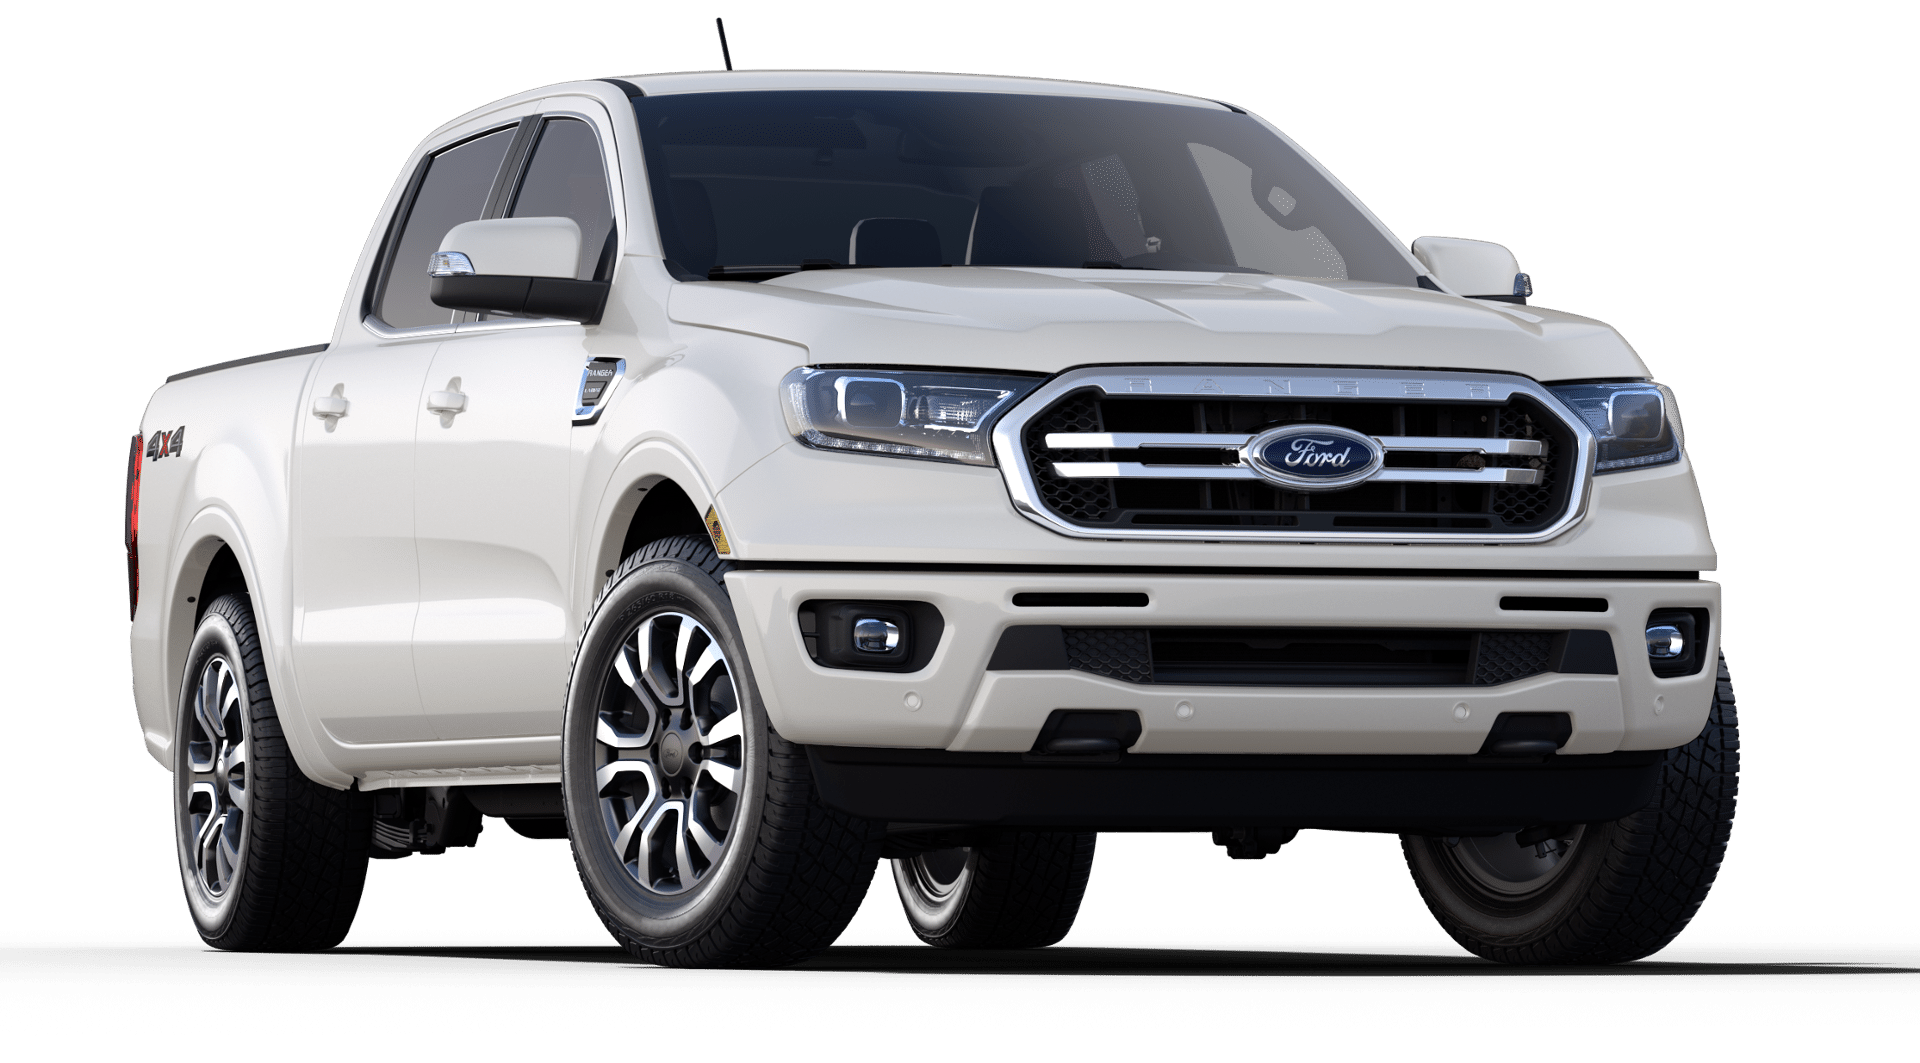 Everything You Need to Know About the 2019 Ford Ranger, From Pricing to Packages - The News Wheel